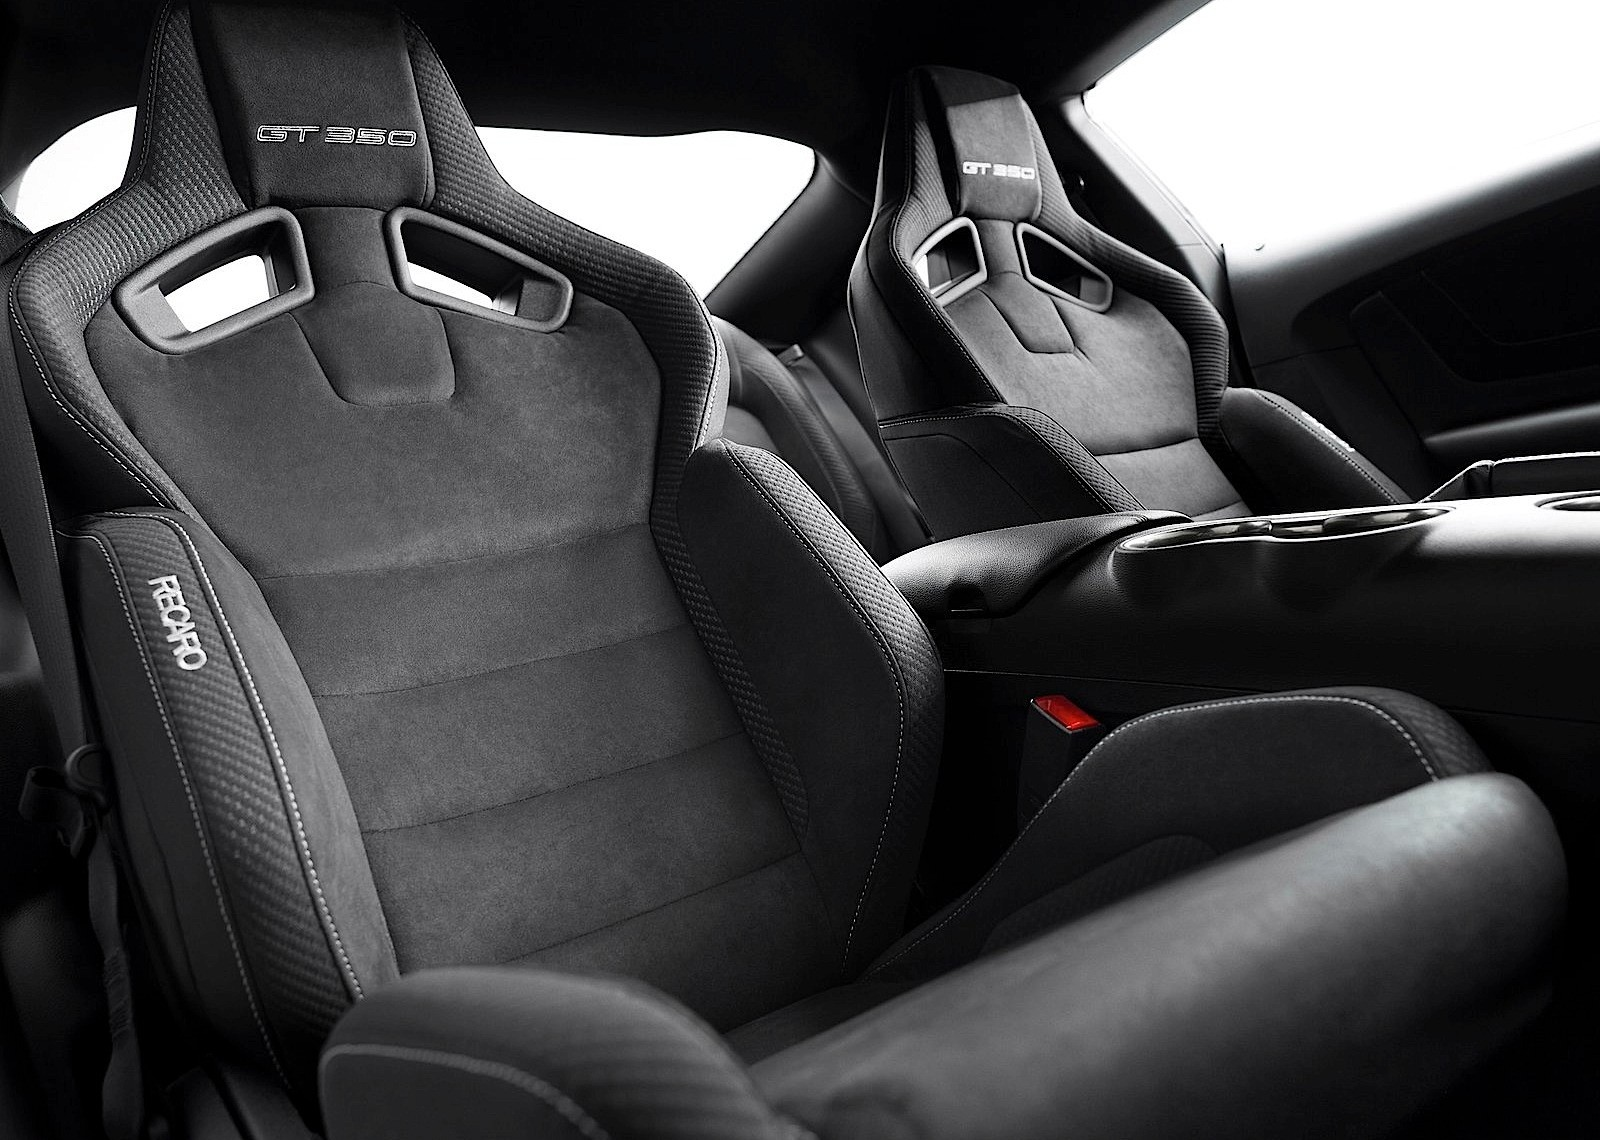 mustang ford gt350 shelby seats recaro performance autoevolution present specs cars